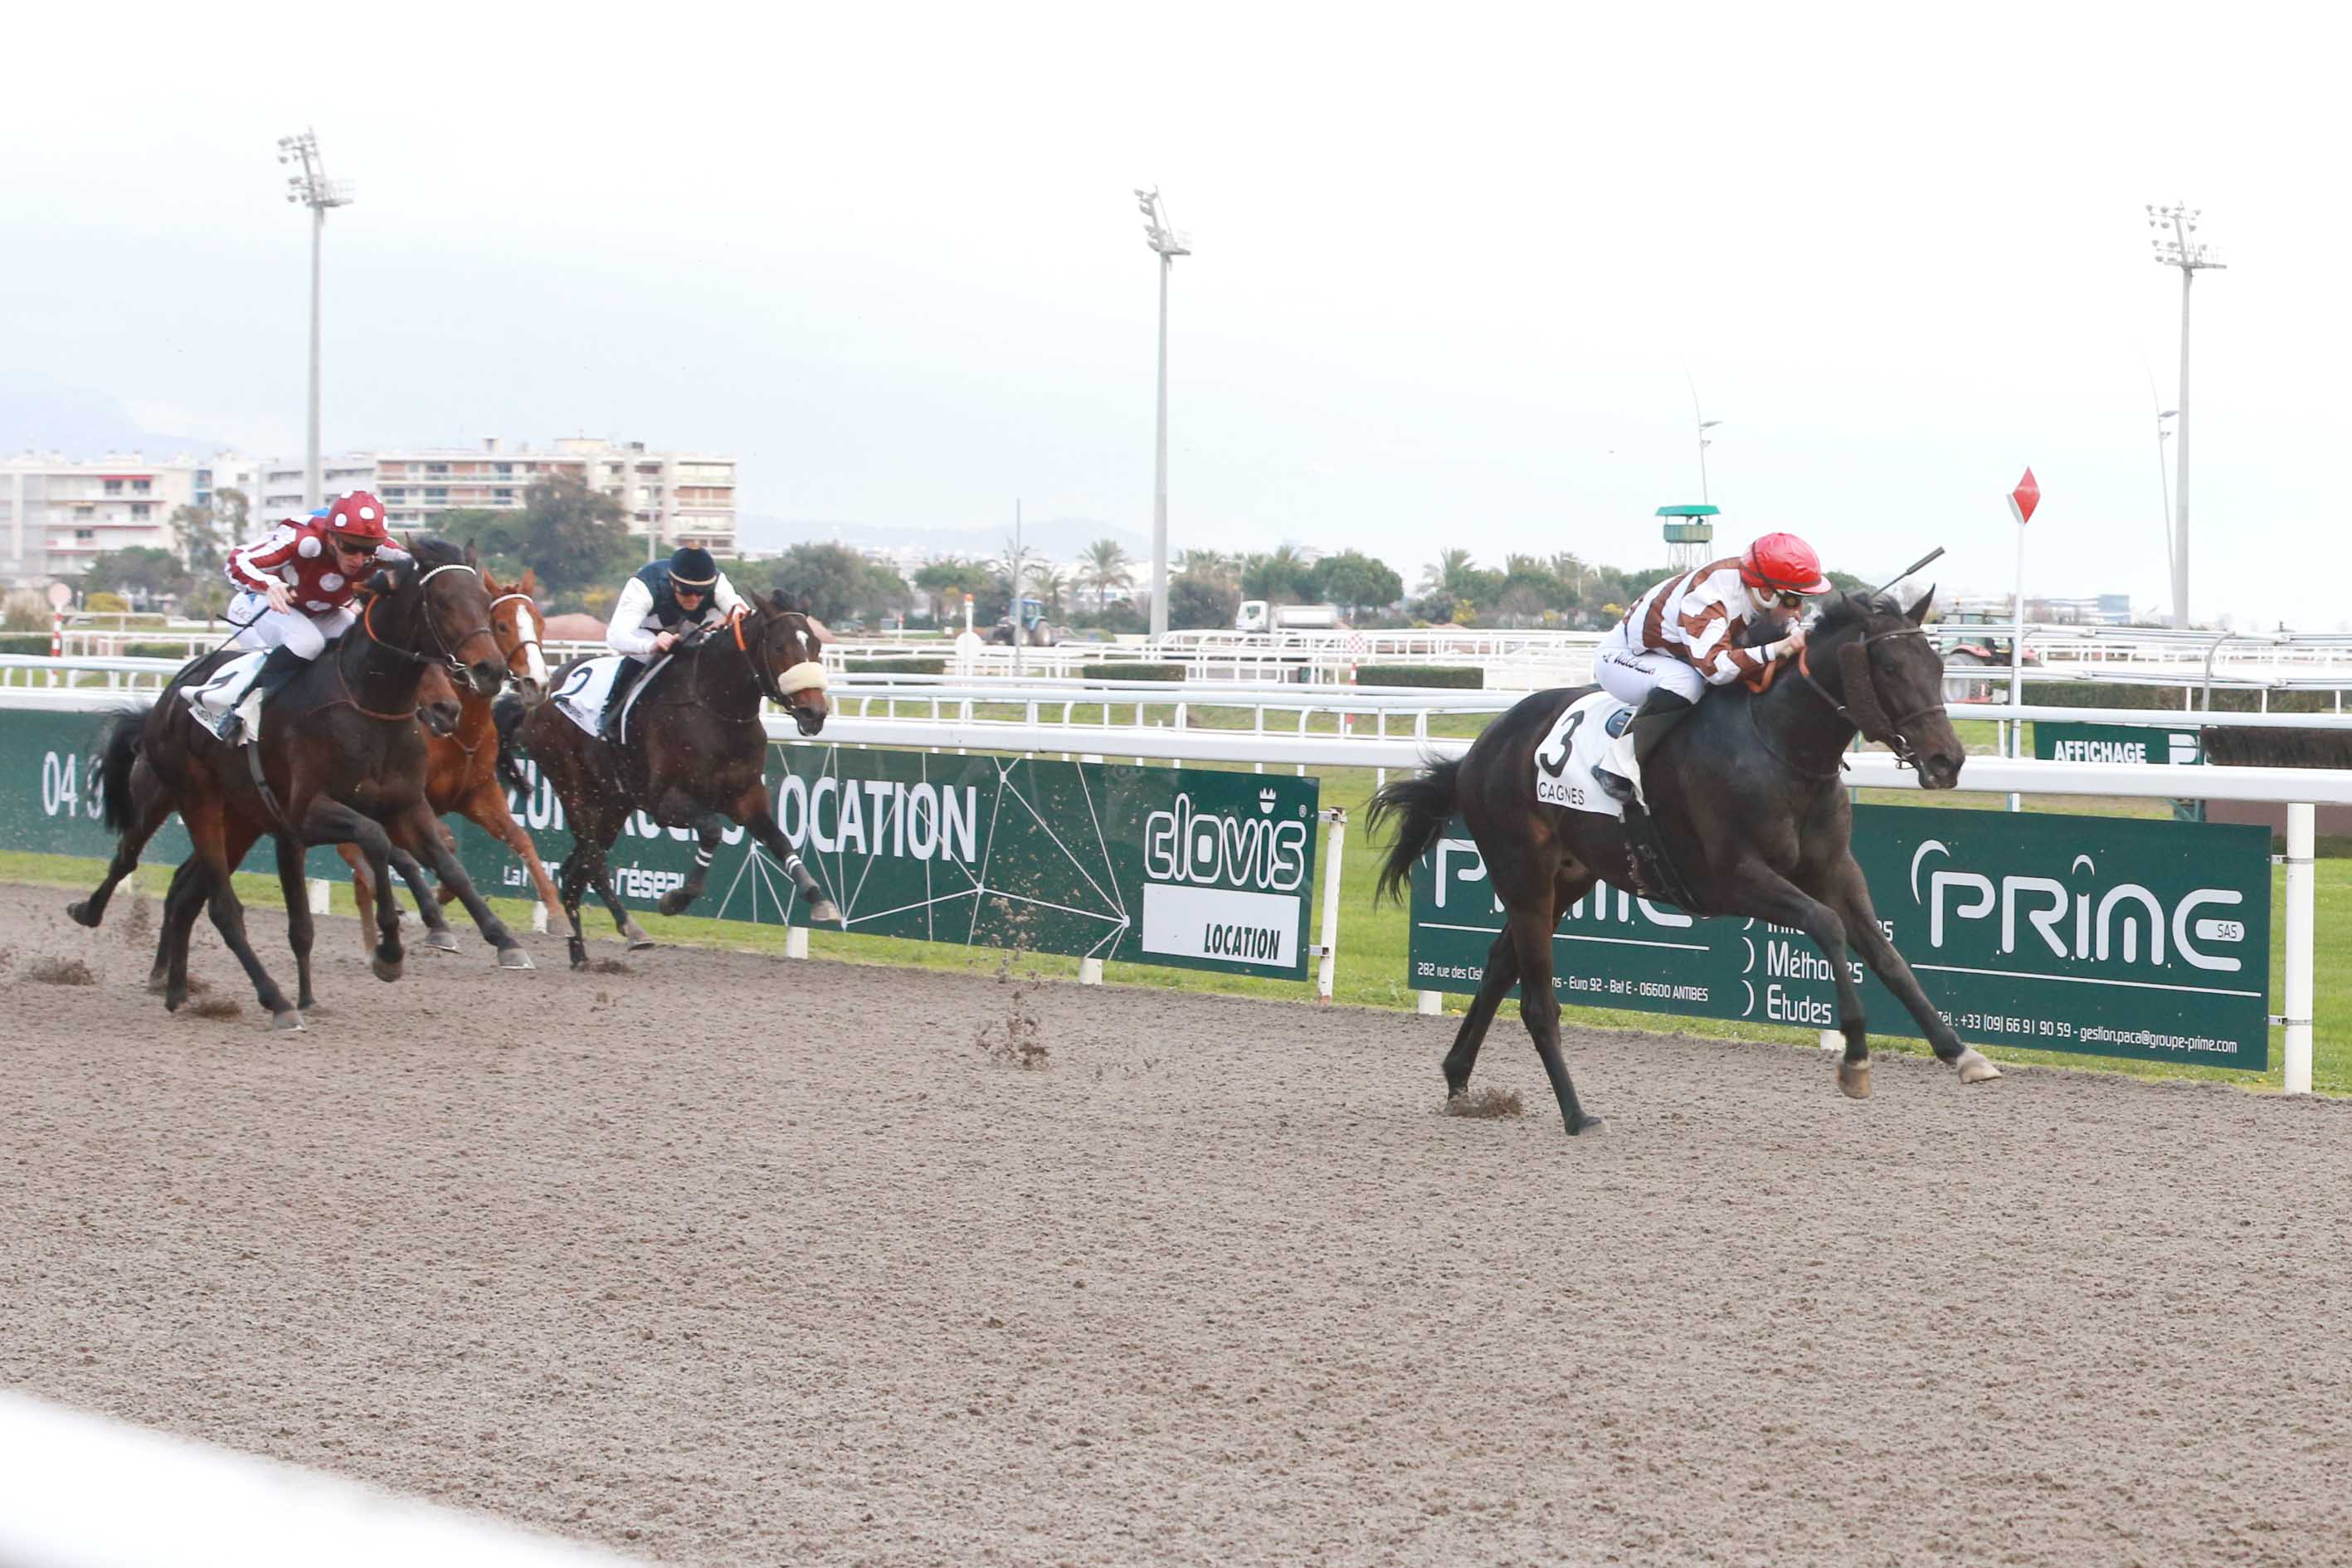 PRIX LOUIS GAUTIER VIGNAL (CLASSE 2) - London Memories poursuit sa série